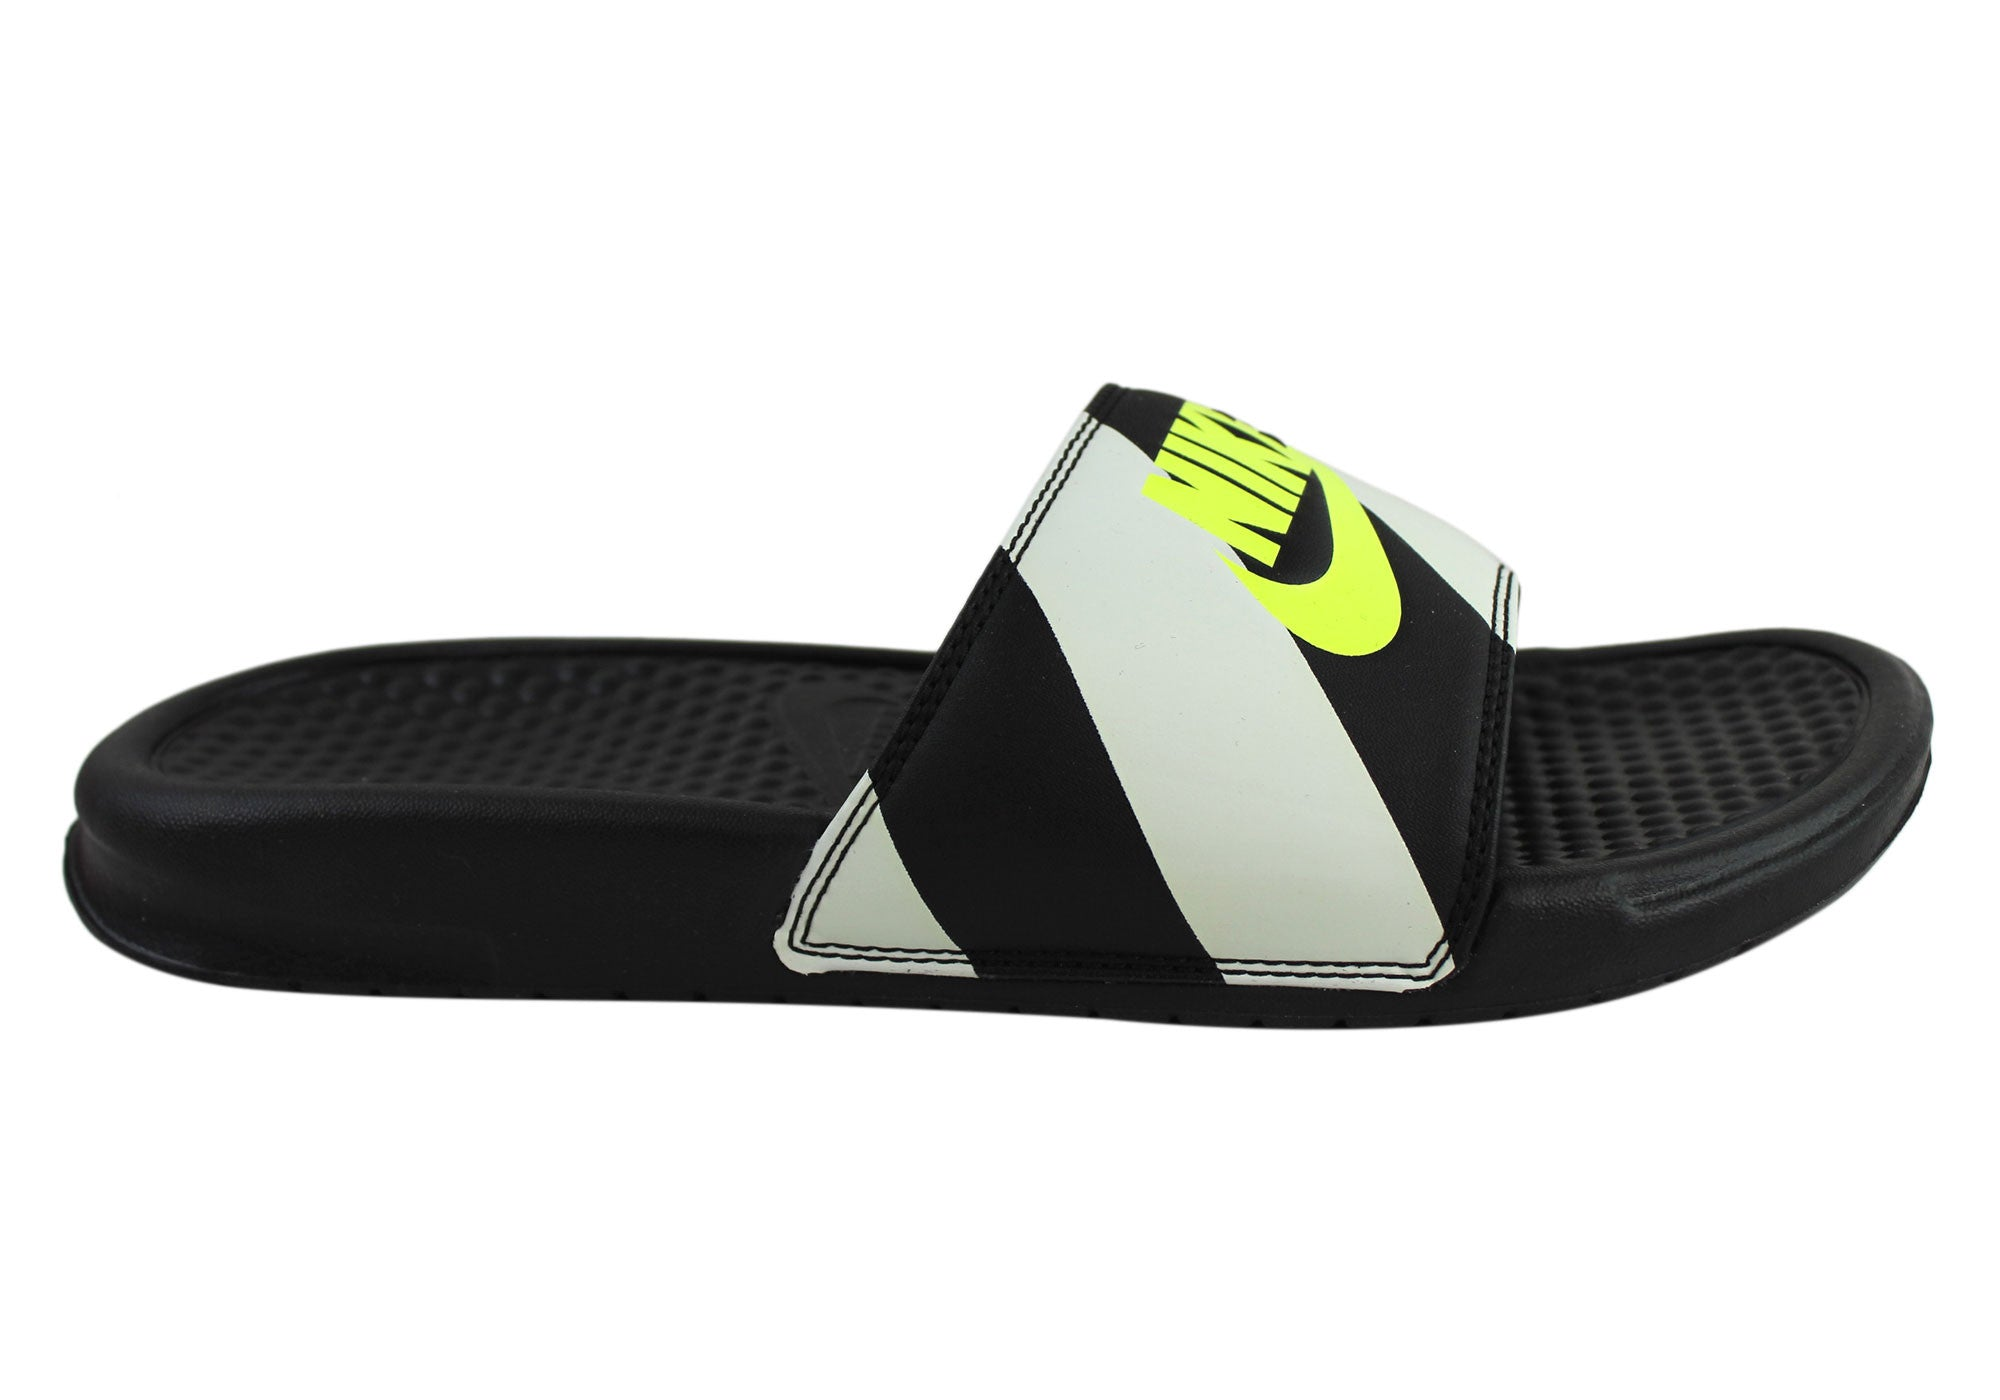 9e72548246958d Nike Benassi JDI Mens Sports Beach Pool Recovery Comfort Slide ...